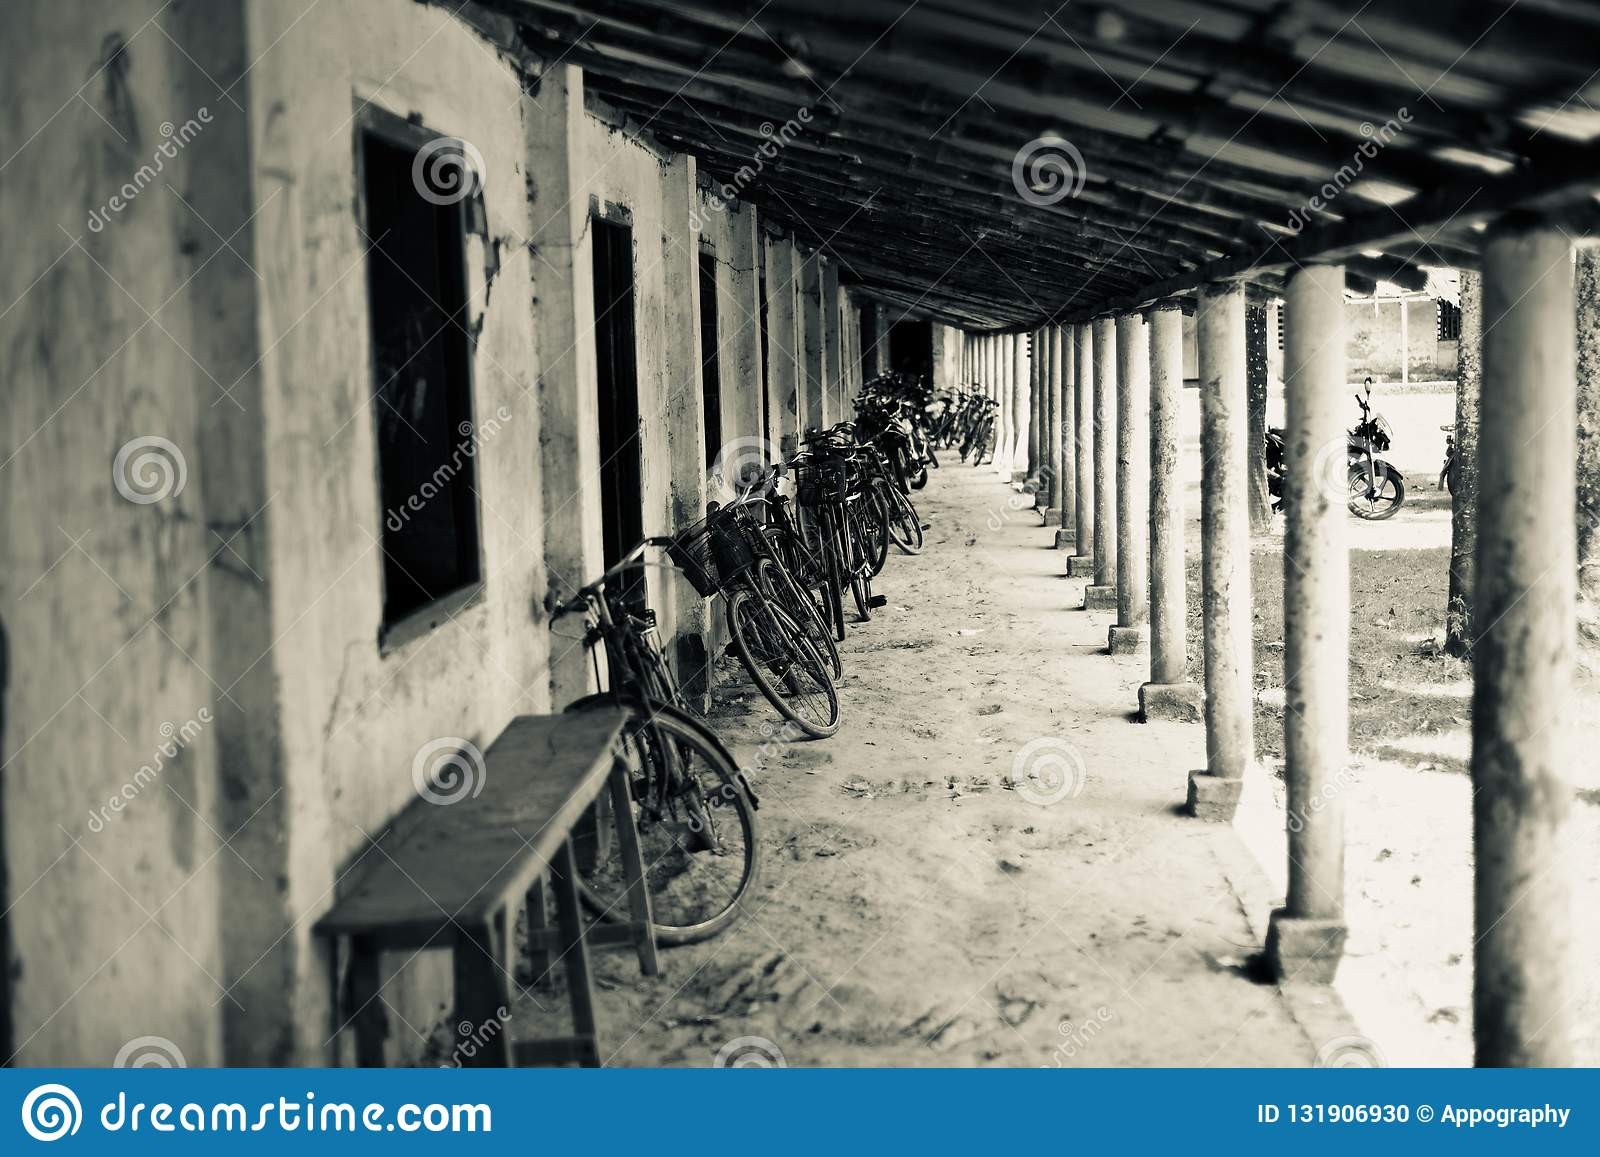 Bicycles parked in front of school rooms